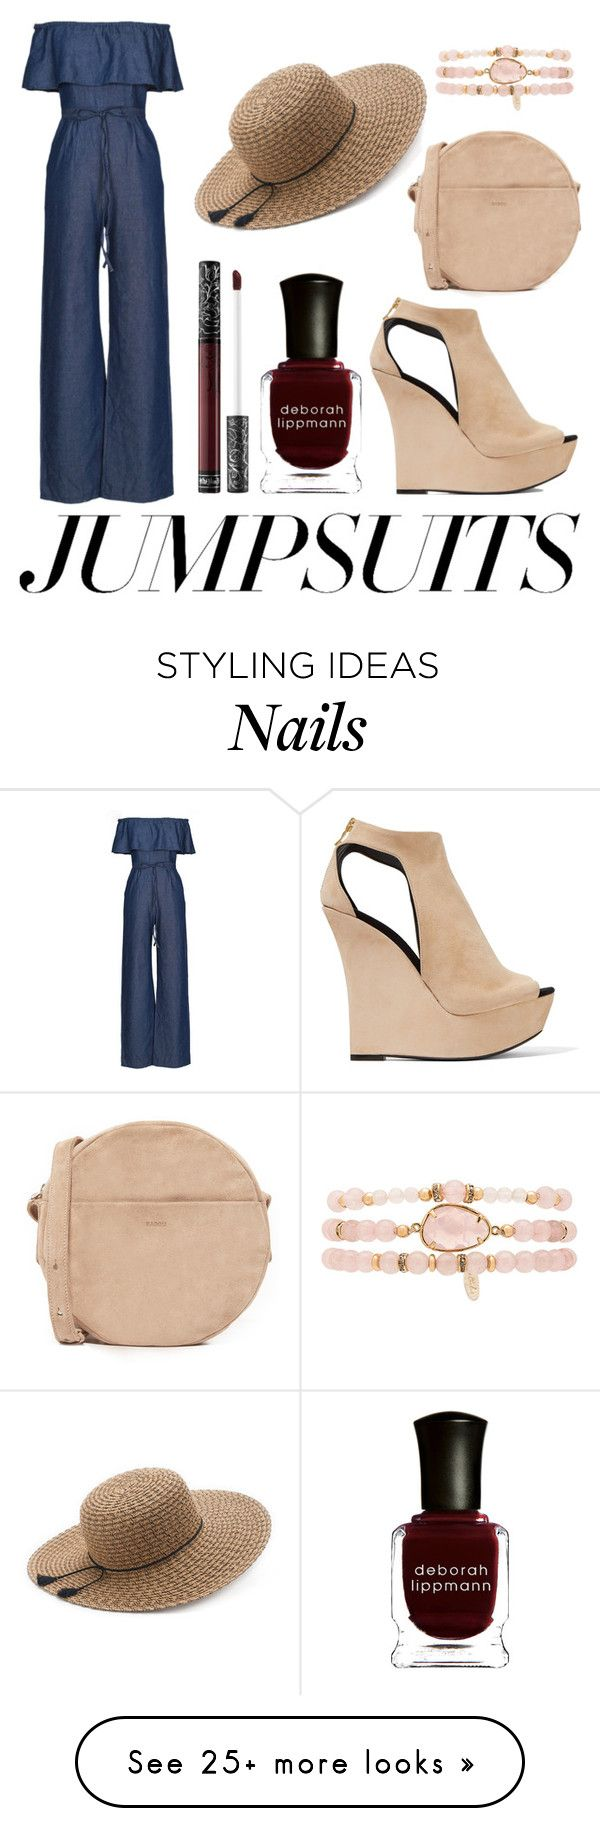 """157 #Jumpsuits"" by silverfoxx99 on Polyvore featuring WithChic, Kat Von D, Deborah Lippmann, Balmain, SONOMA Goods for Life, BAGGU, Ettika and jumpsuits"